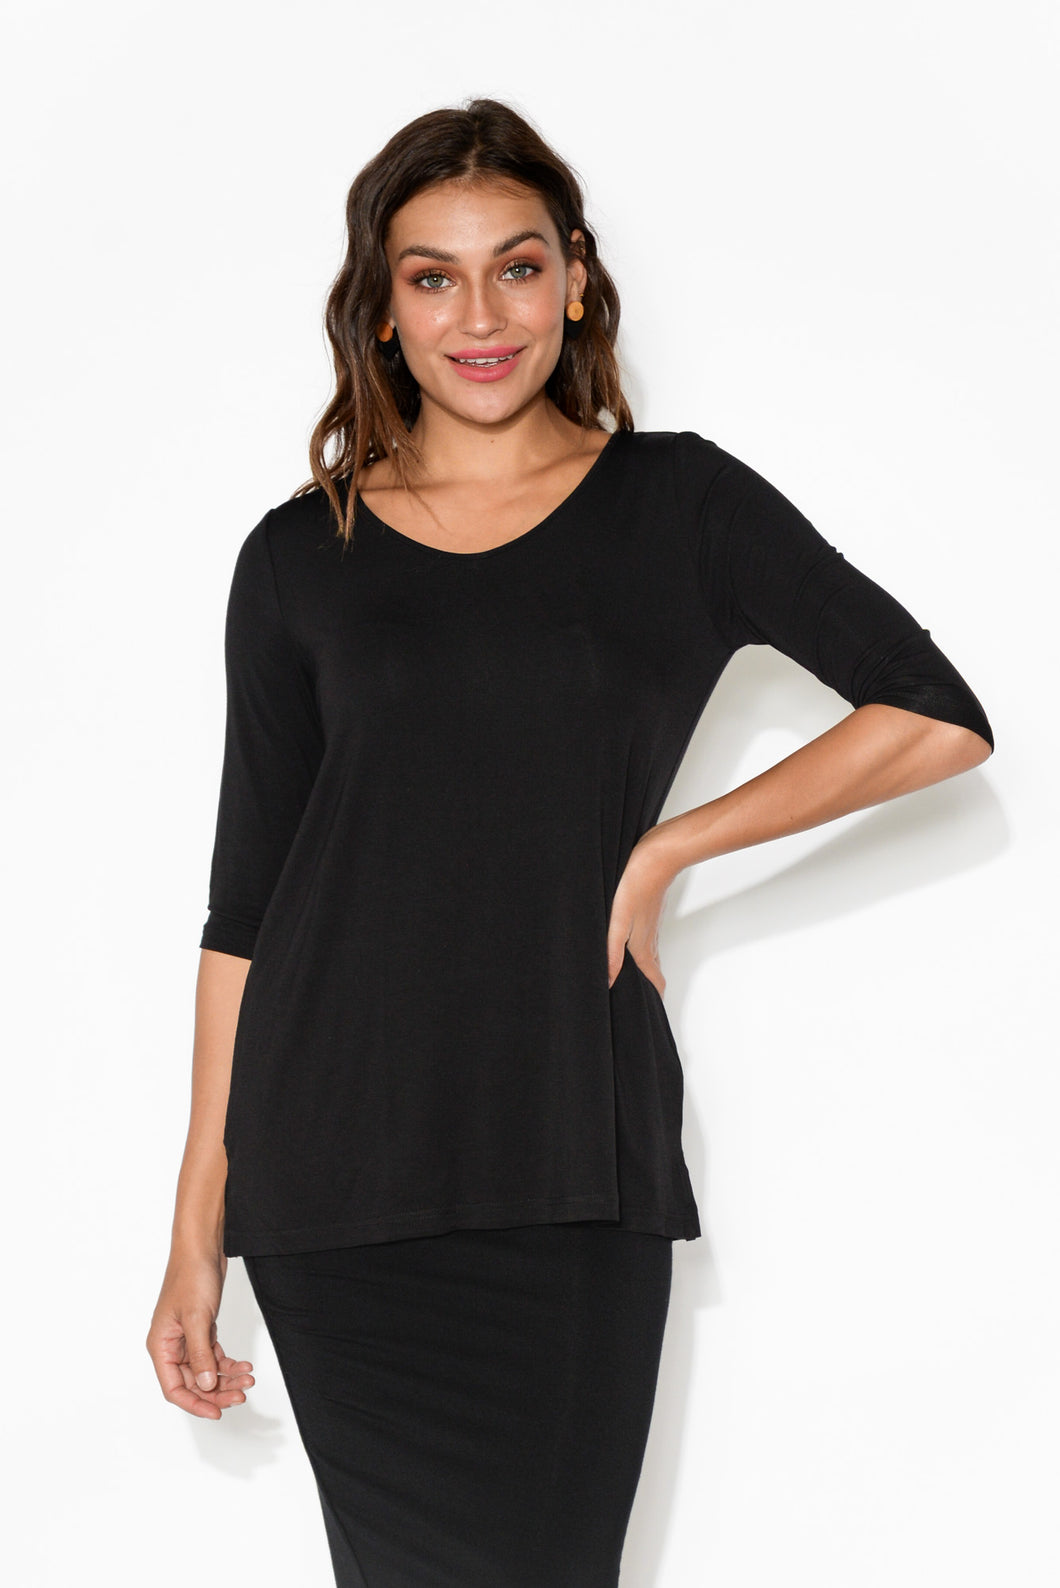 Tropez Black Bamboo Top